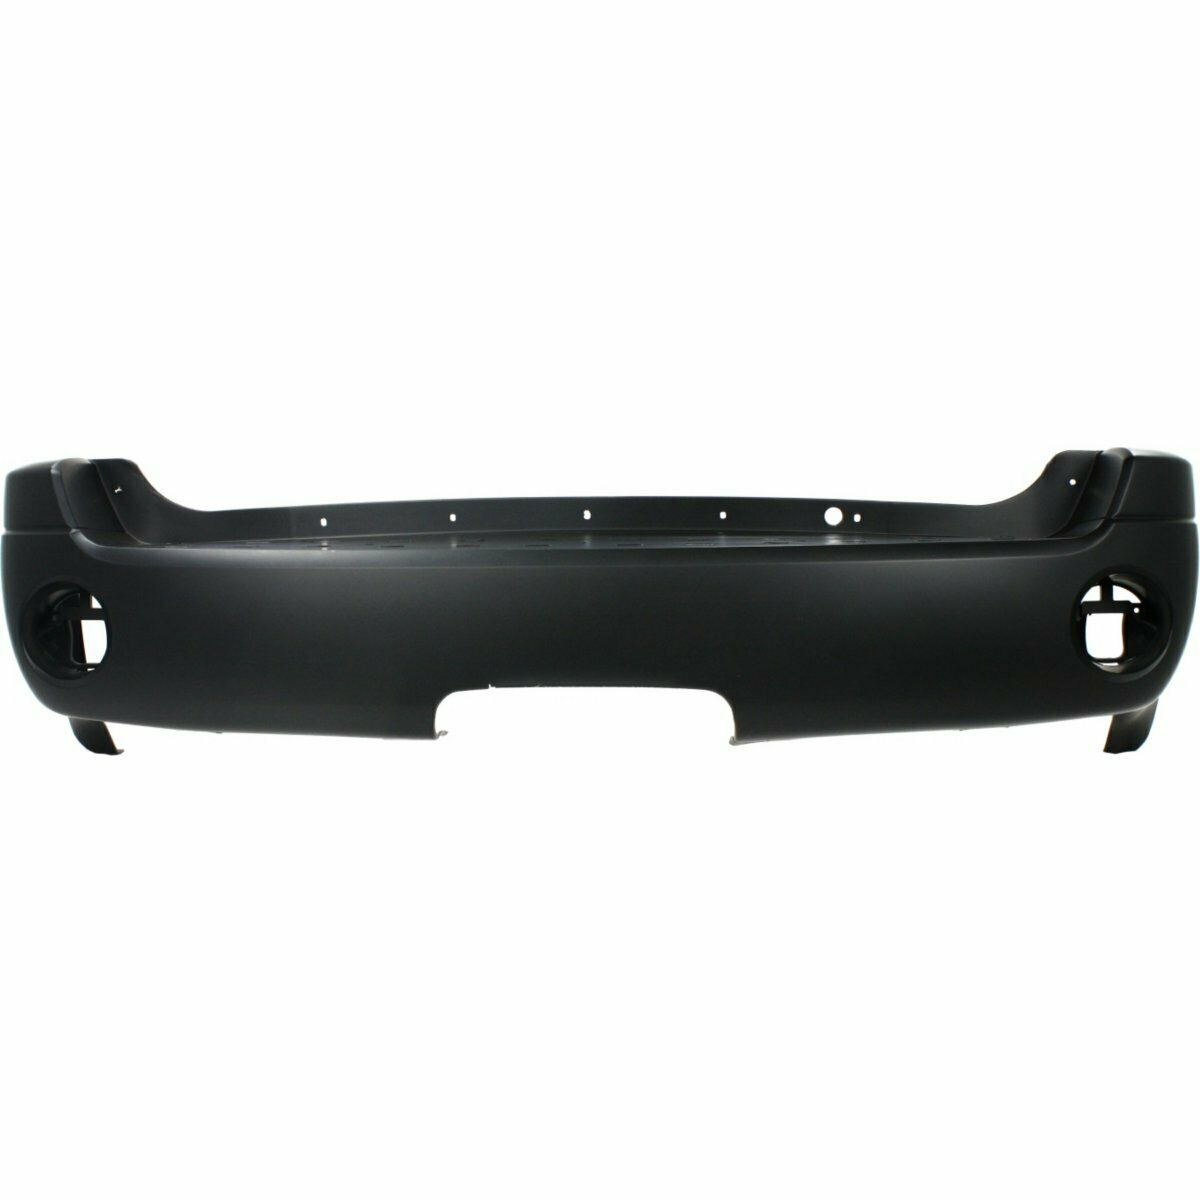 2002-2009 GMC Envoy Rear Bumper Painted to Match